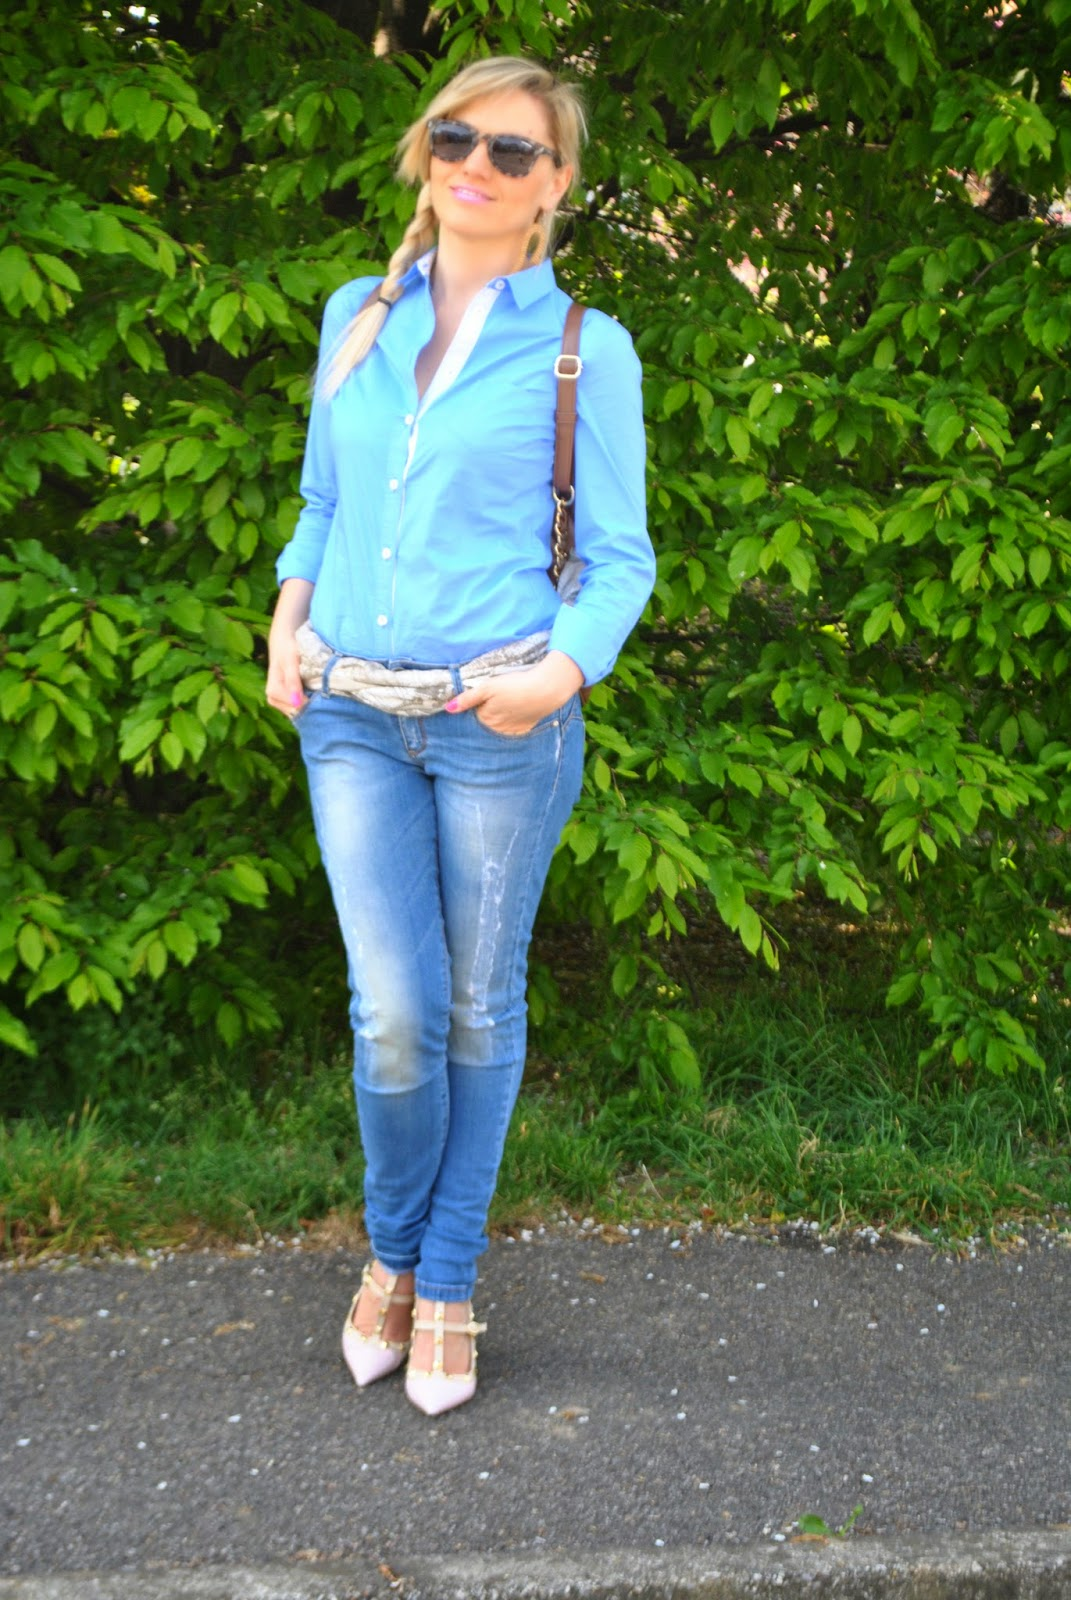 outfit jeans e camicia outfit jeans e tacchi mariafelicia magno colorblock by felym mariafelicia magno fashion blogger come abbinare jeans e tacchi come abbinare la camicia azzurra outfit blu outfit zainetto come abbianre lo zainetto  outfit aprile 2015 outfit primaverili casual how to wear jeans and heels outfit jeans and heels outfit blue shirt how to wear blue shirt valentino shoes backpack fashion bloggers italy girls blondie blonde hair blonde girls